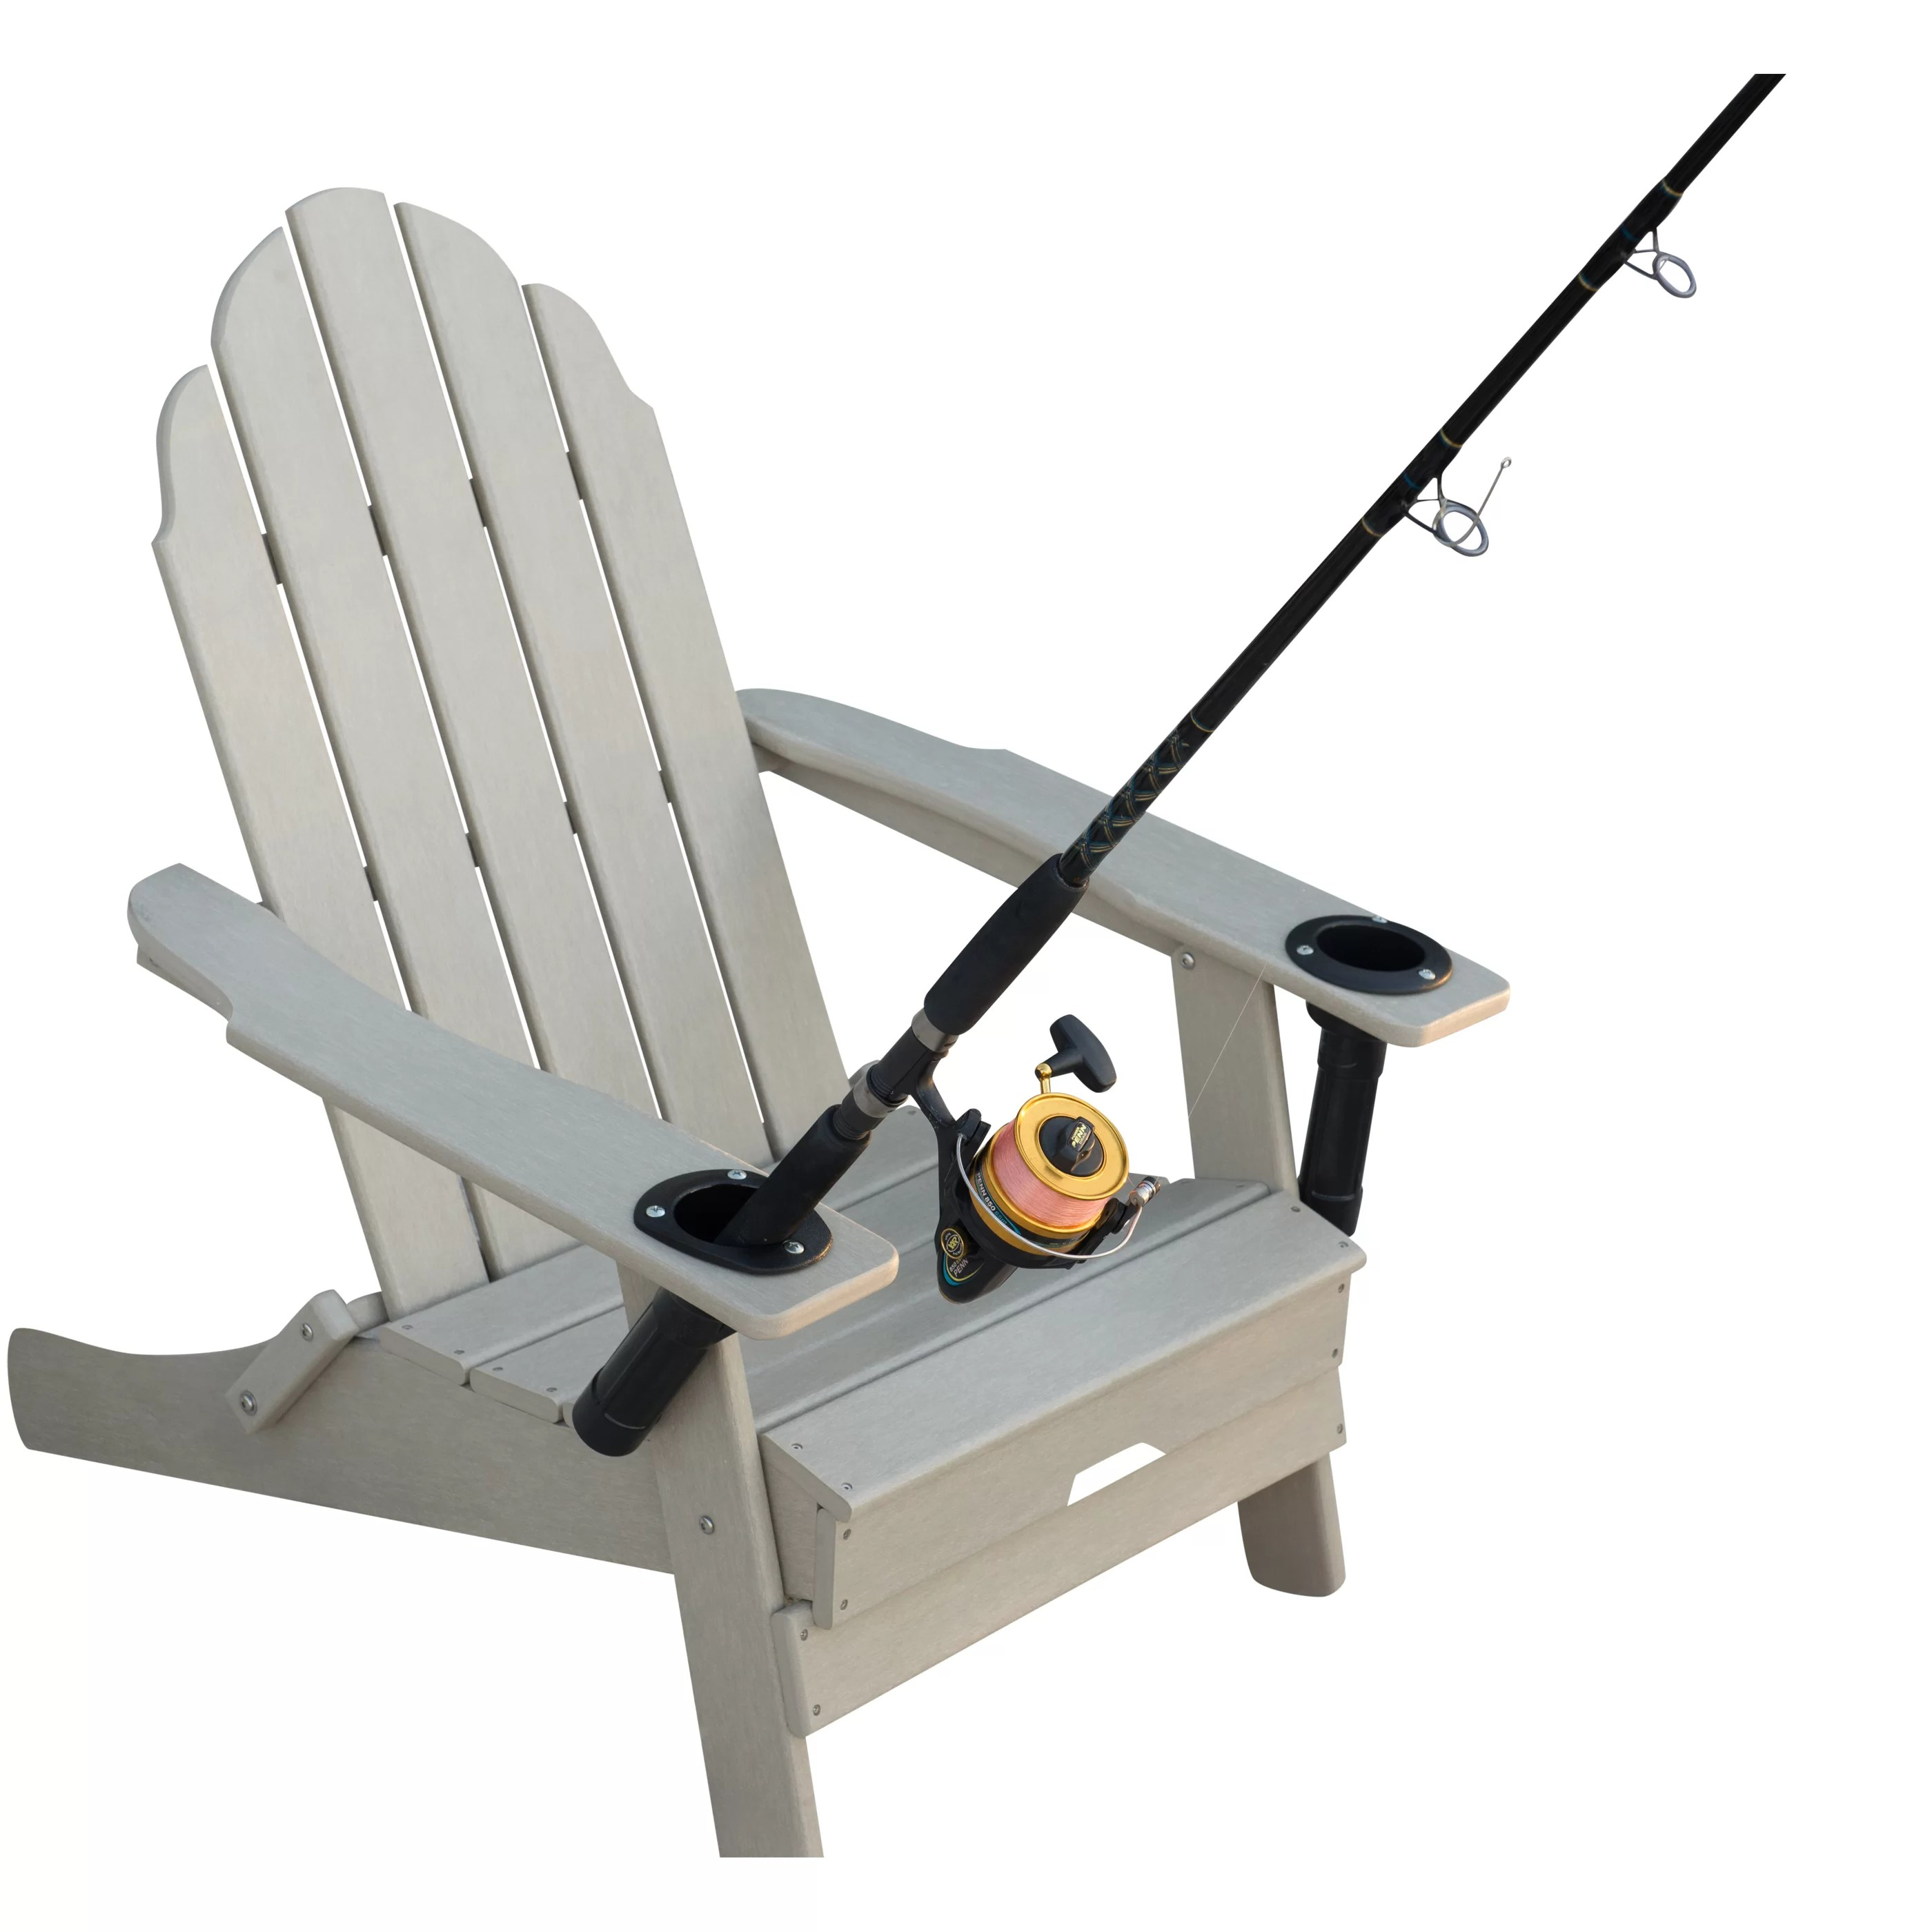 fishing chair add ons walking stick south africa folding anglers with cup and rod holders wayfair